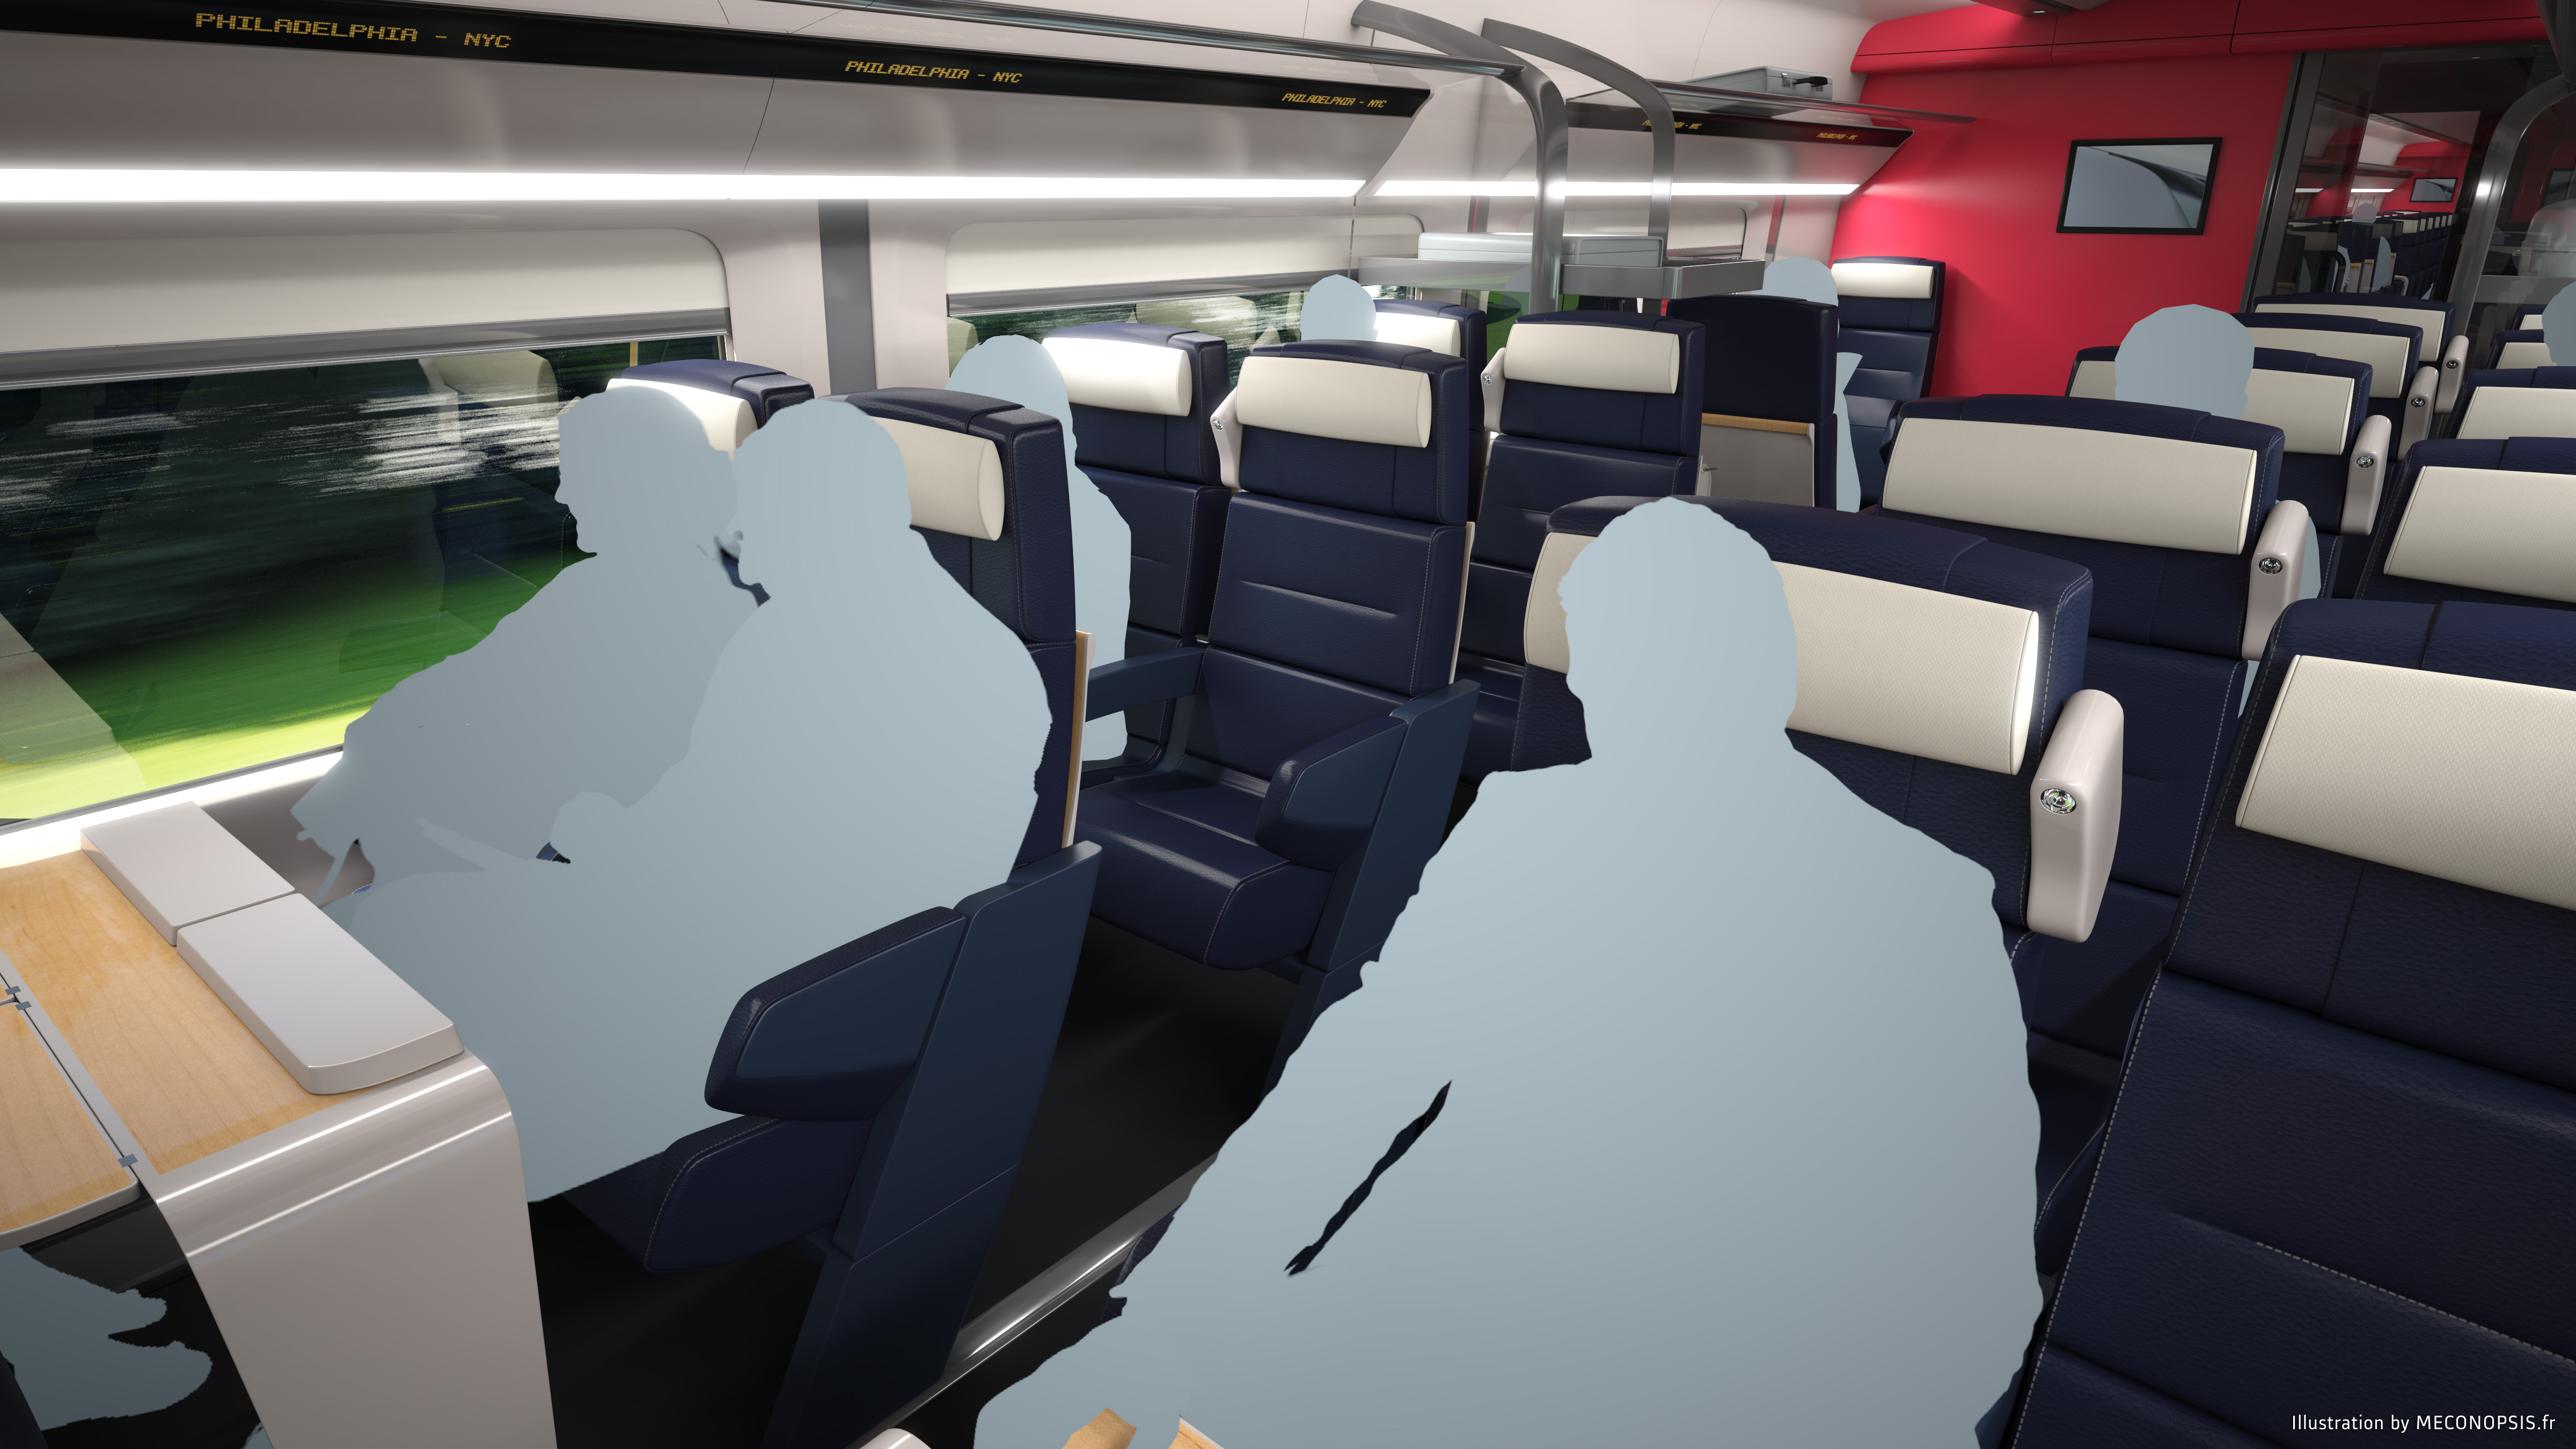 A view of the next generation Acela passenger car